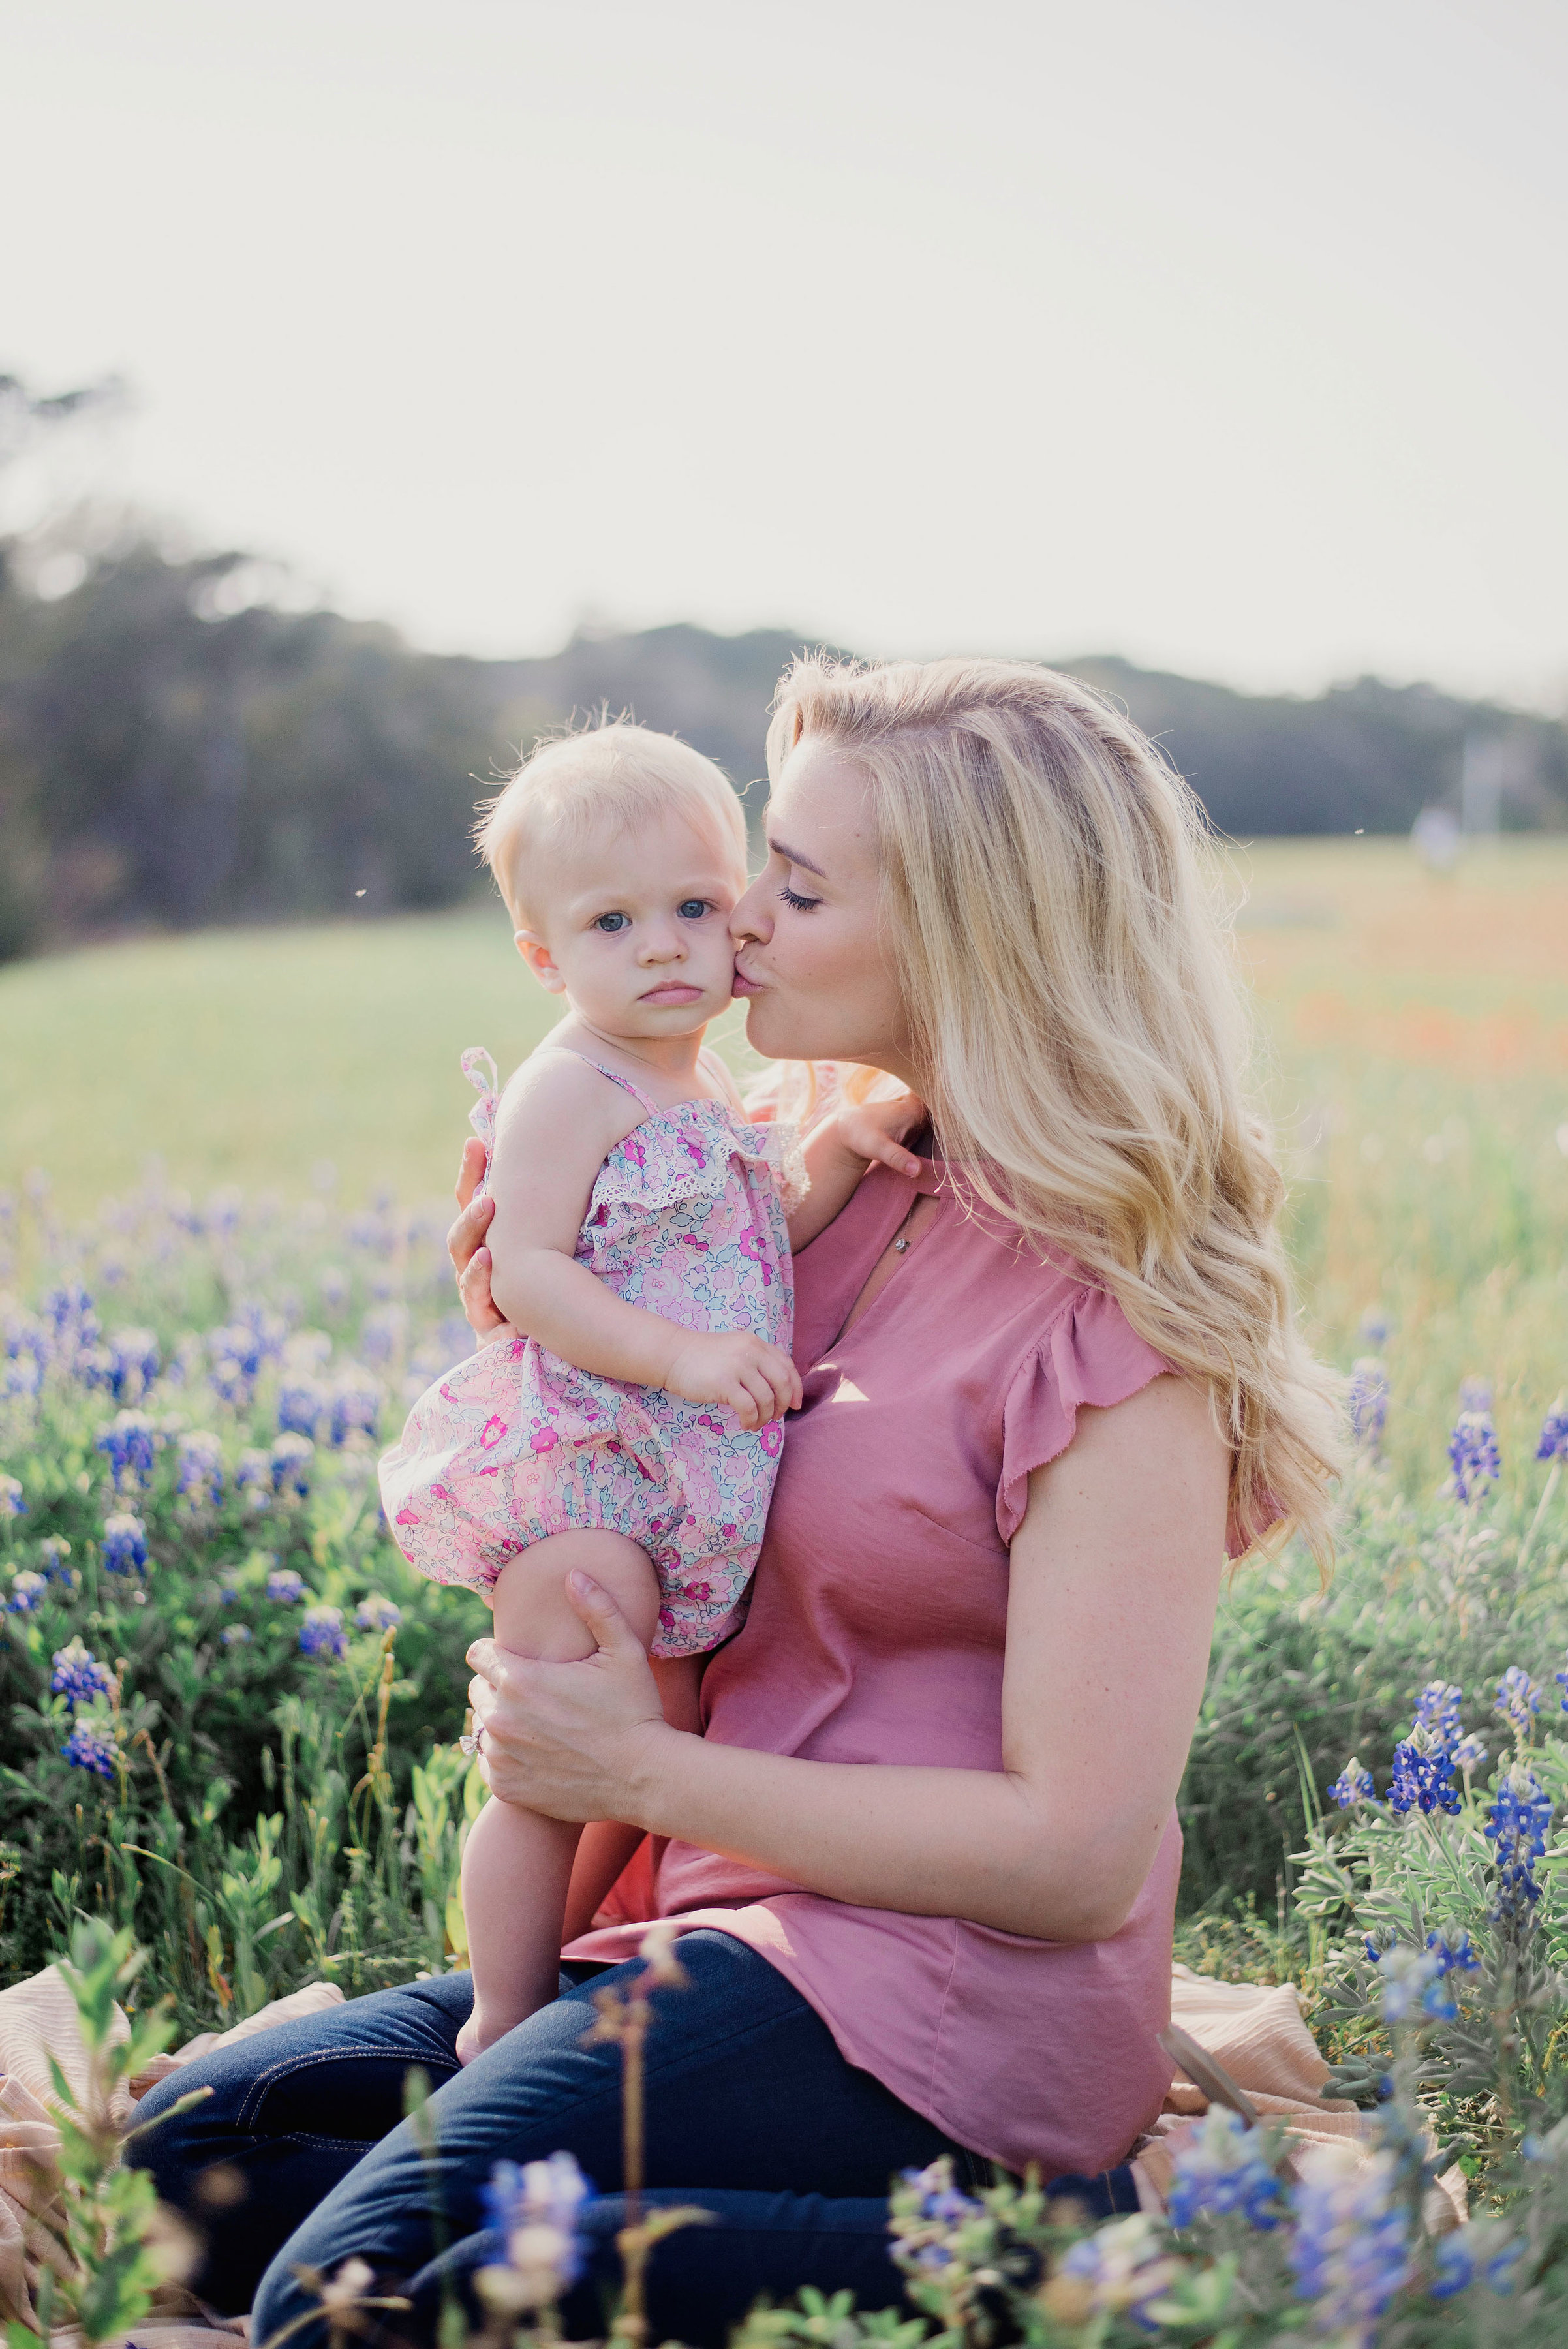 Austin Portrait Photographer First Birthday Session Texas Wildflowers Bluebonnets023.jpg